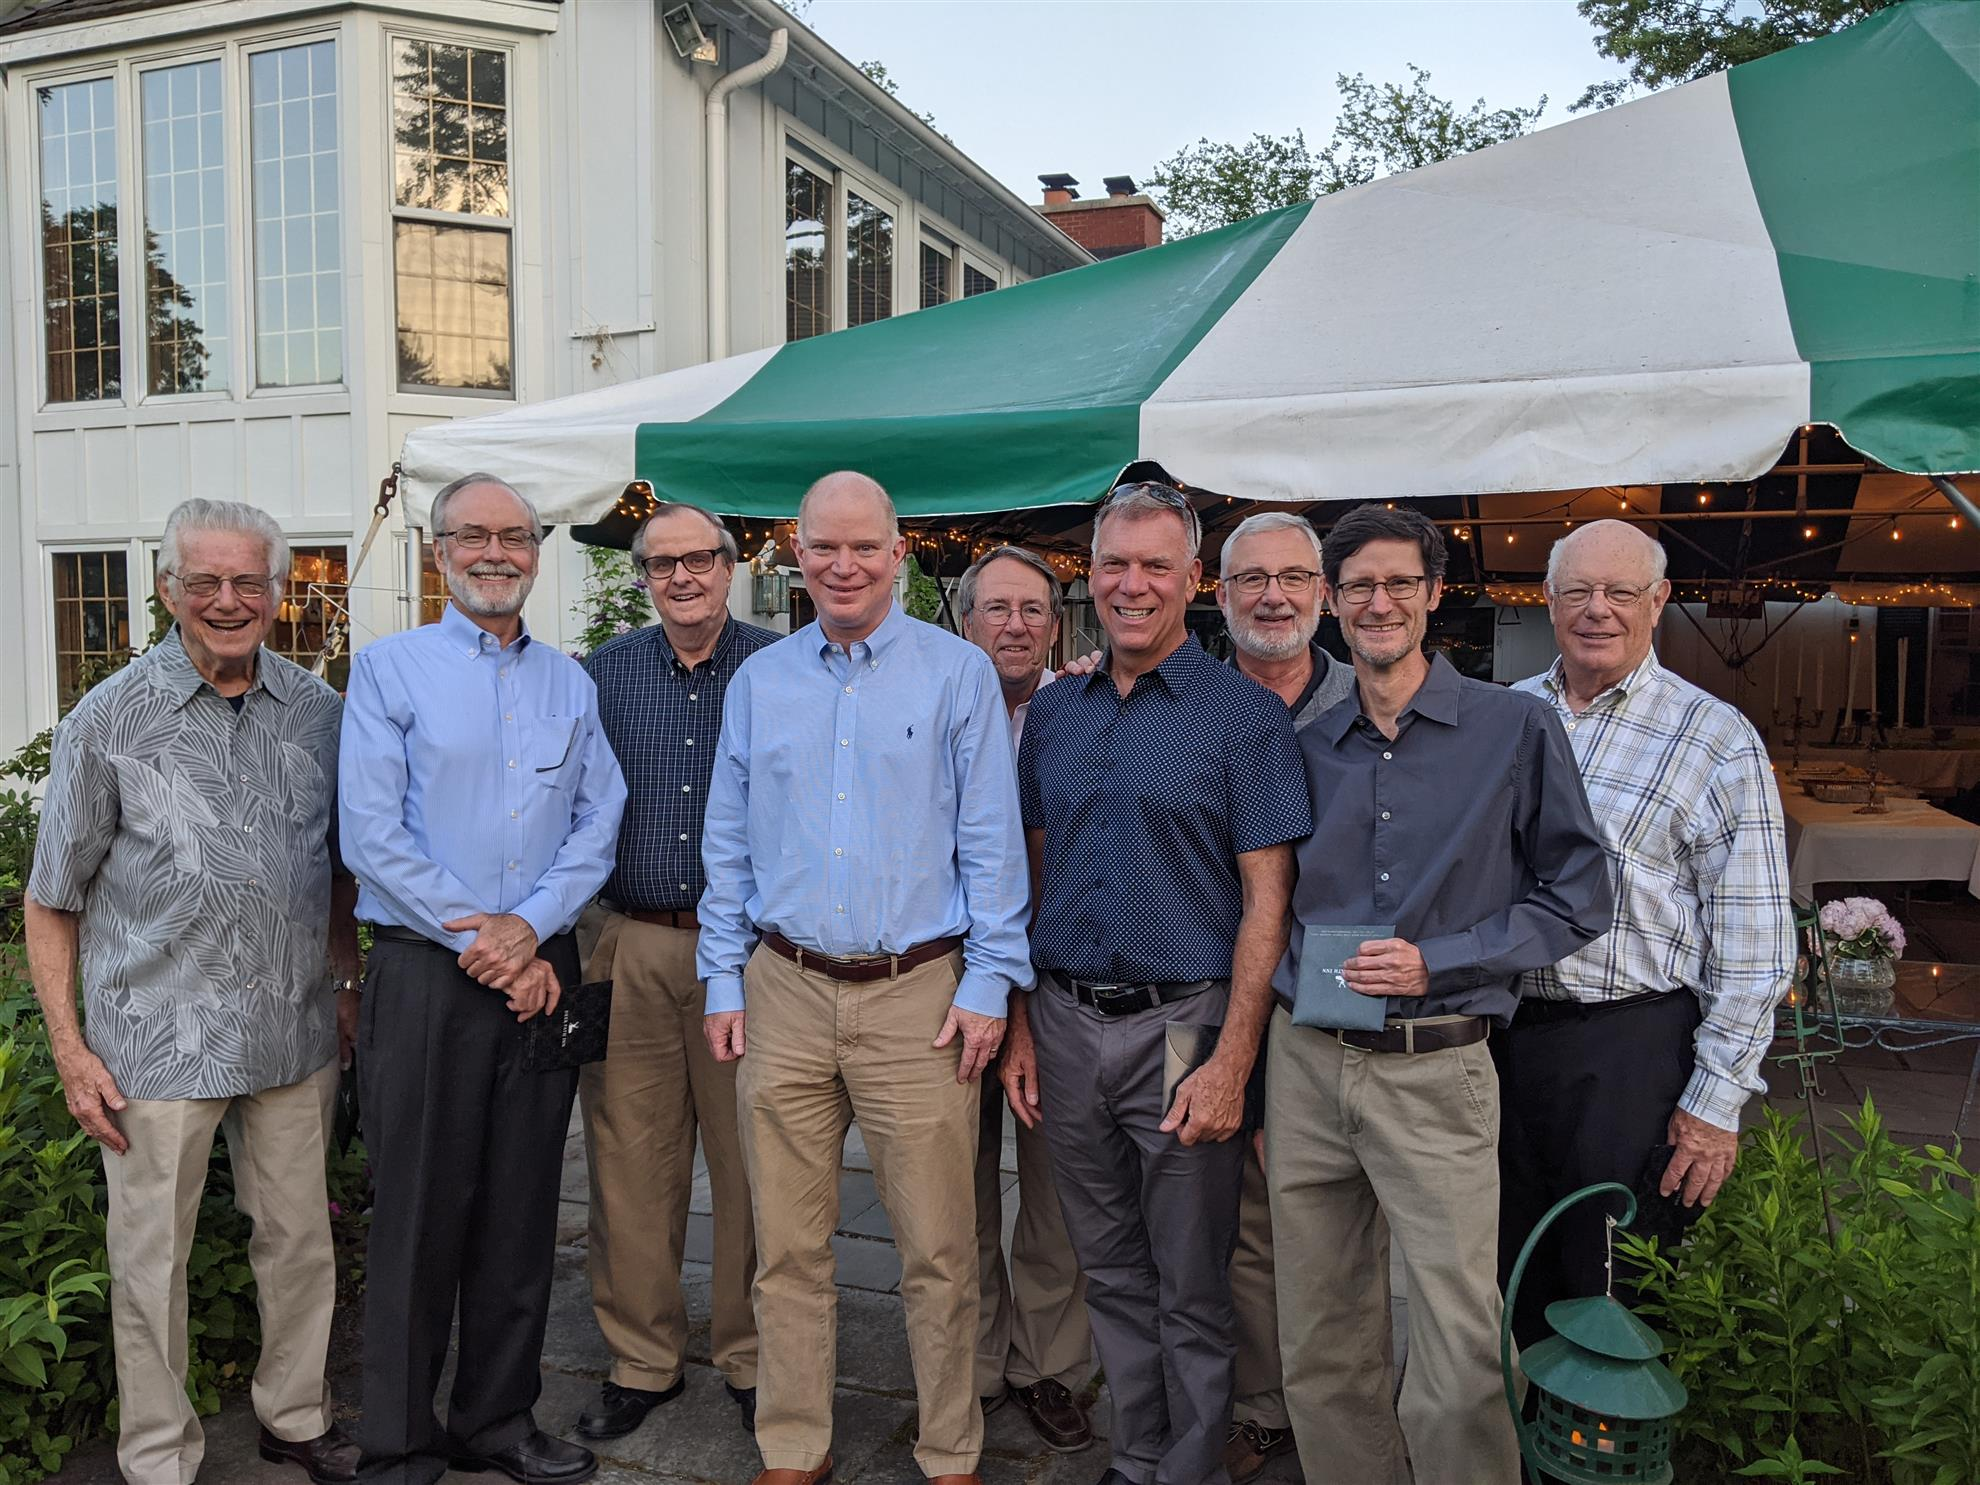 Dick, Jerry, Larry, John H, JJ, John B, Mark, Steve, and Tom stand in front of a white and Lake Forest green party tent.